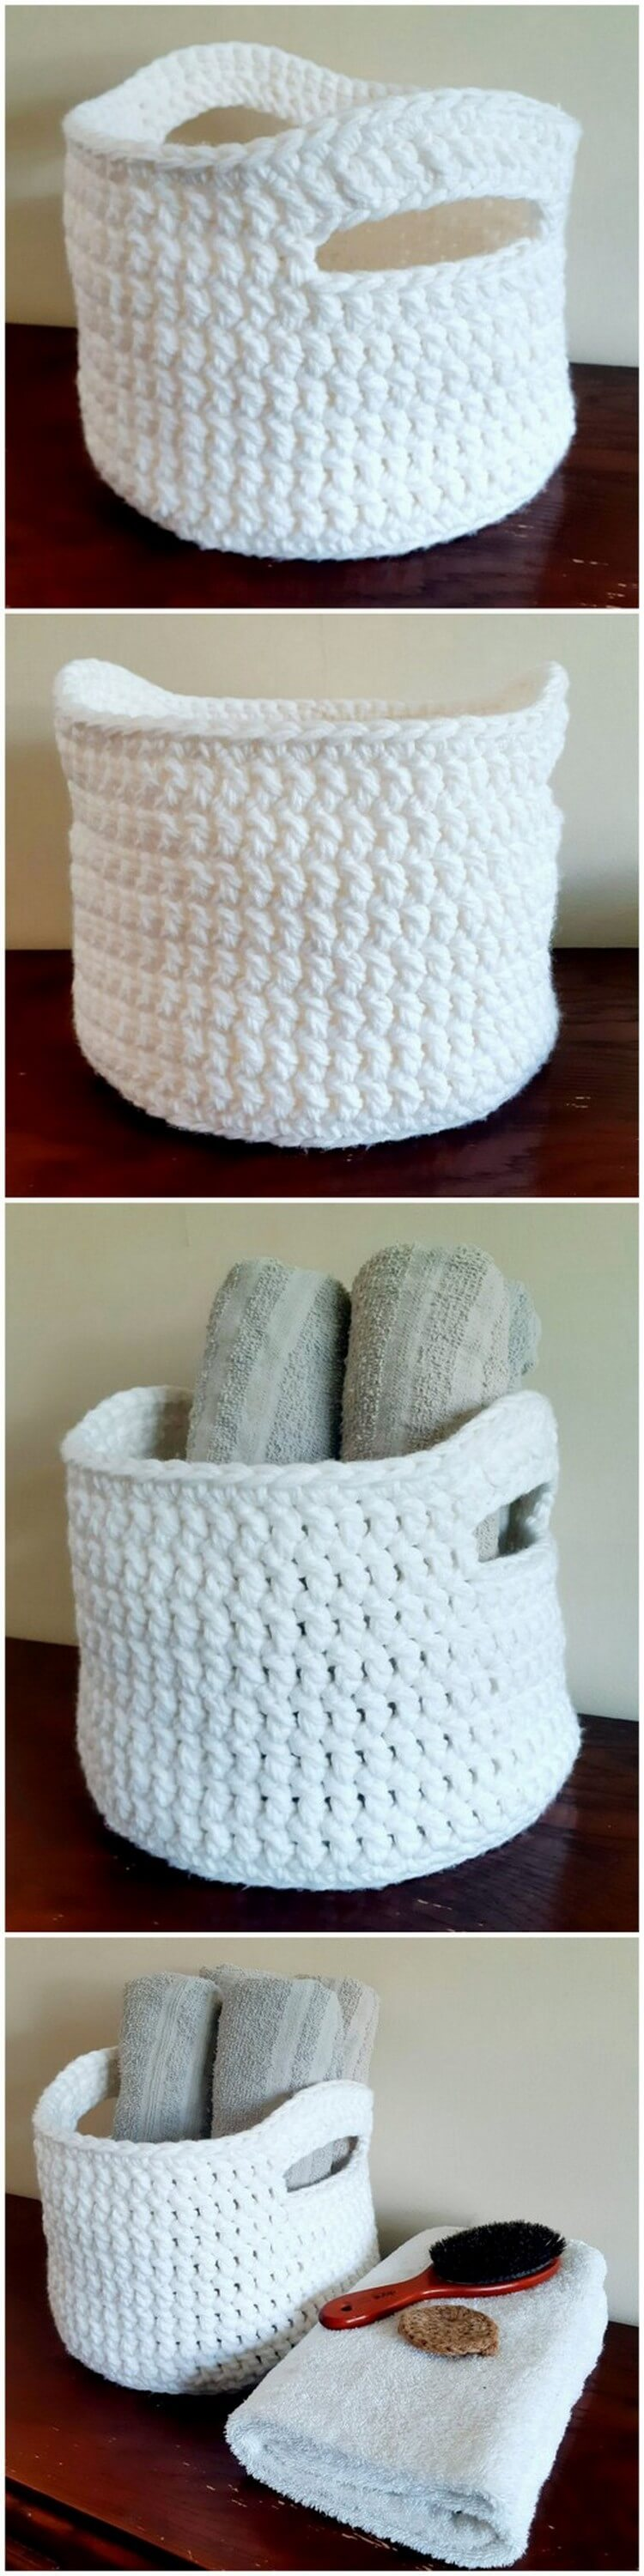 Crochet Basket Pattern (31)